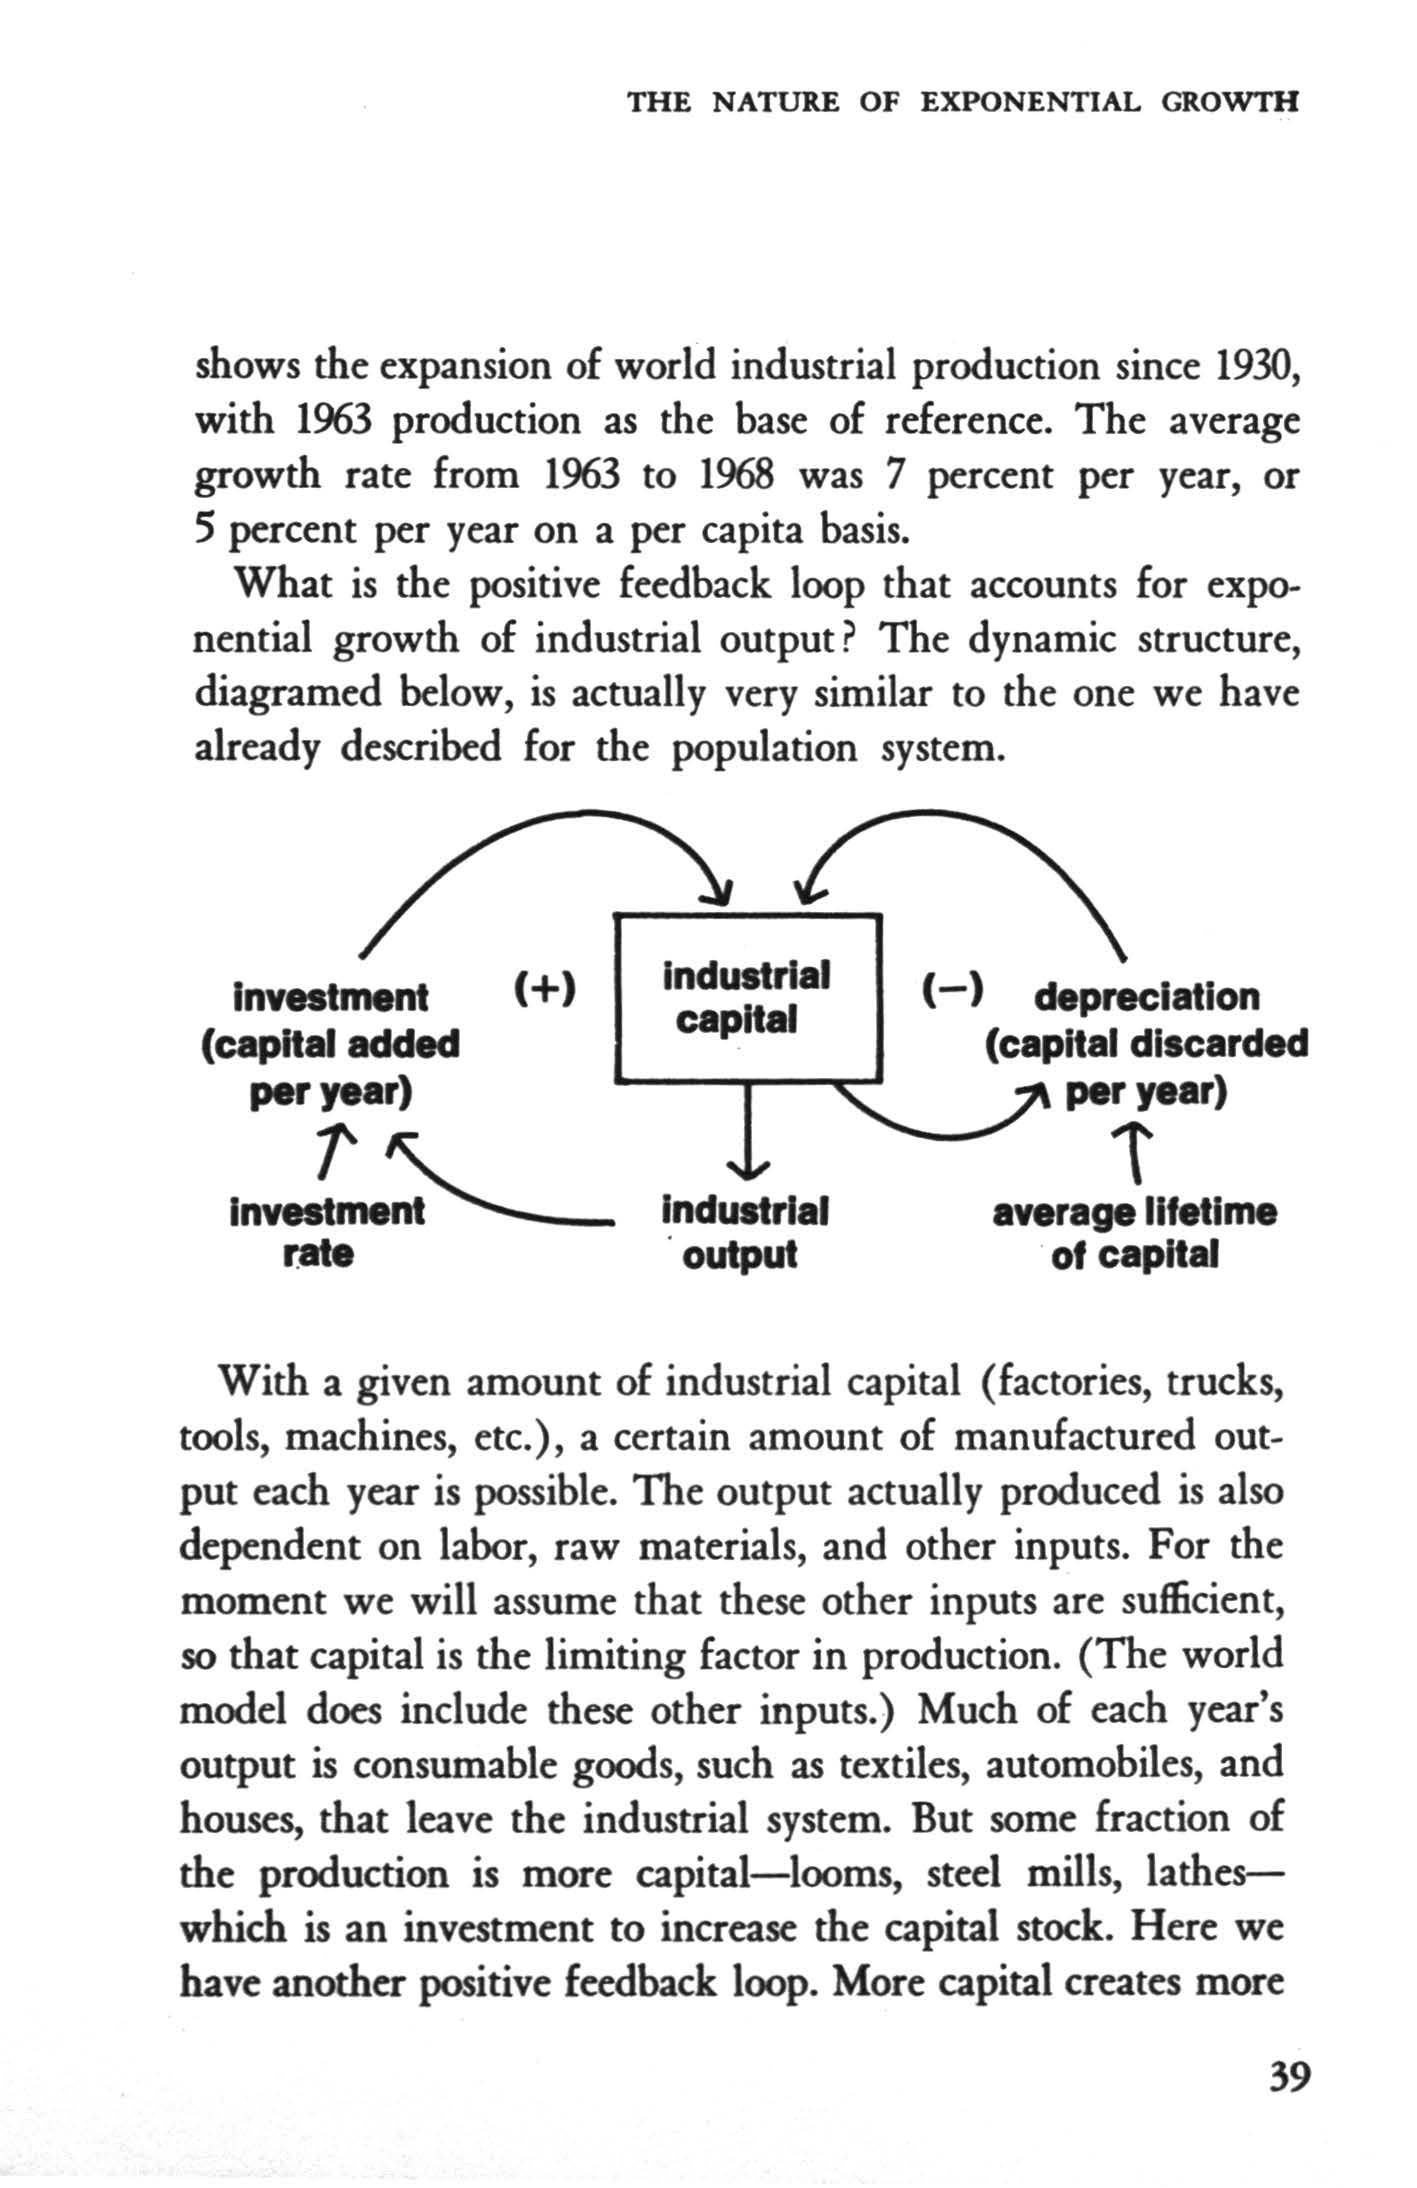 THE NATURE OF EXPONENTAL GROWTH shows the expansion of world industrial production since 1930, with 1963 production as the base of reference.